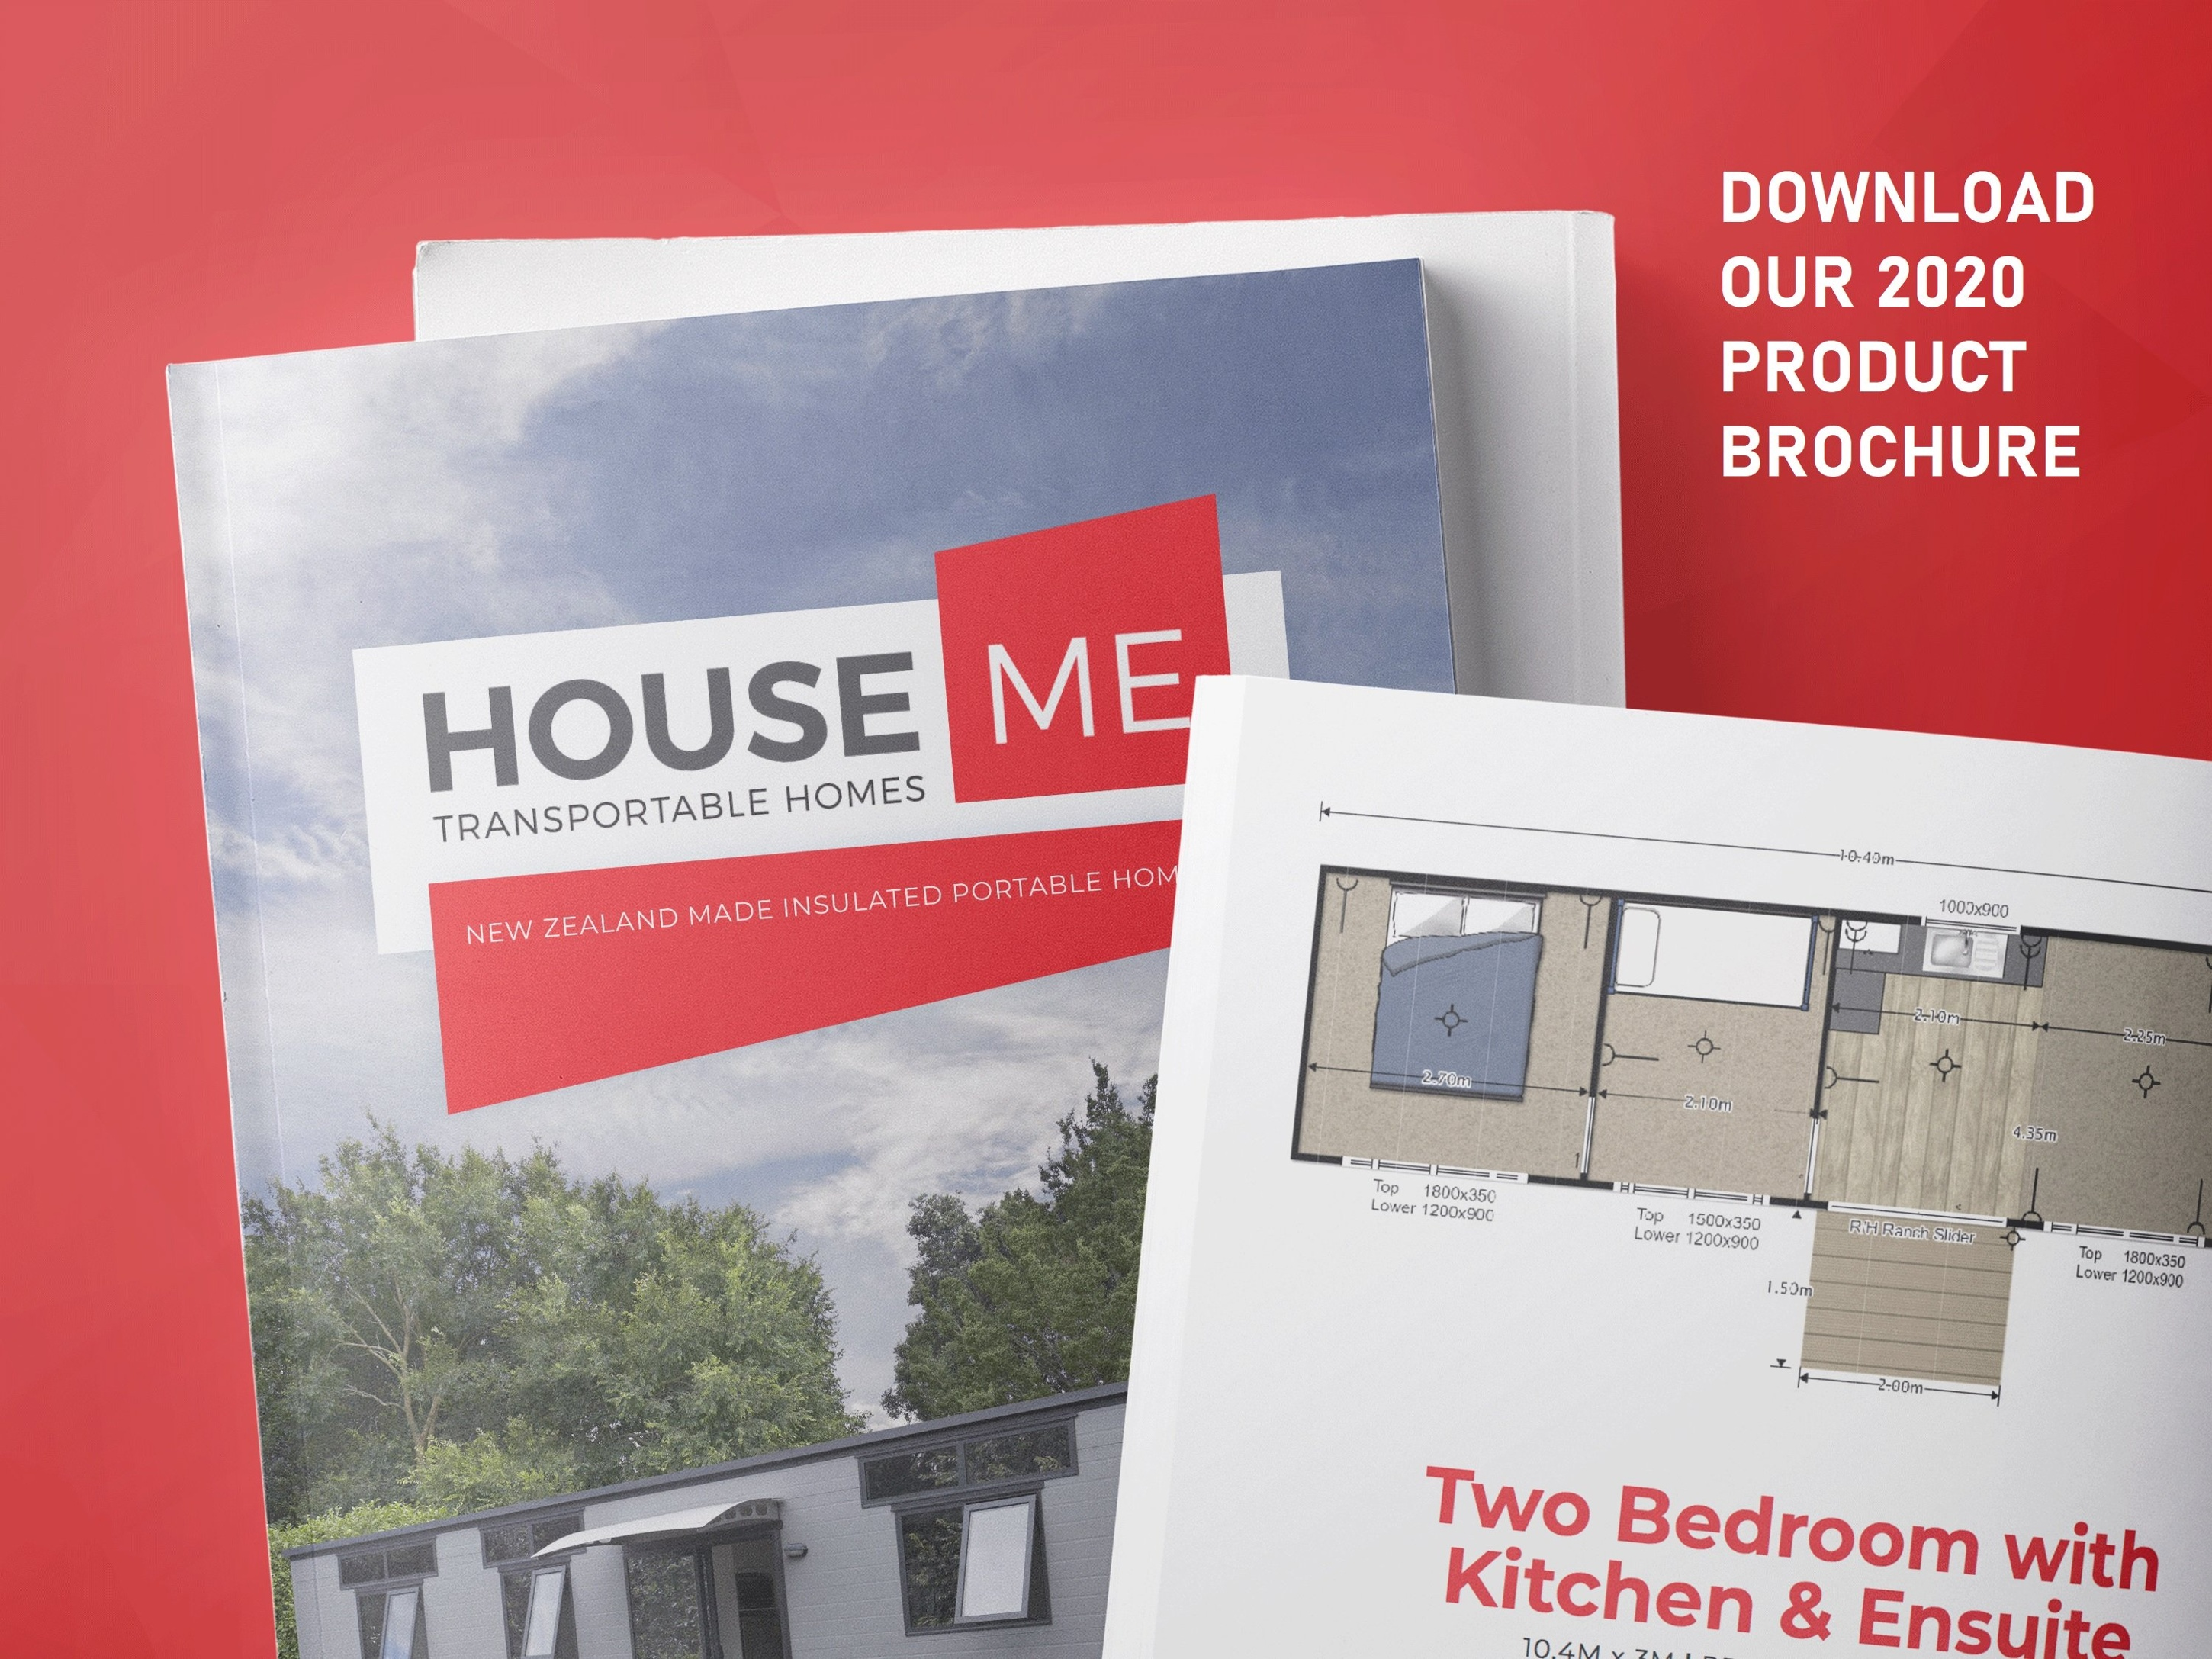 Download the hosue me 2017 transportable homes brochure